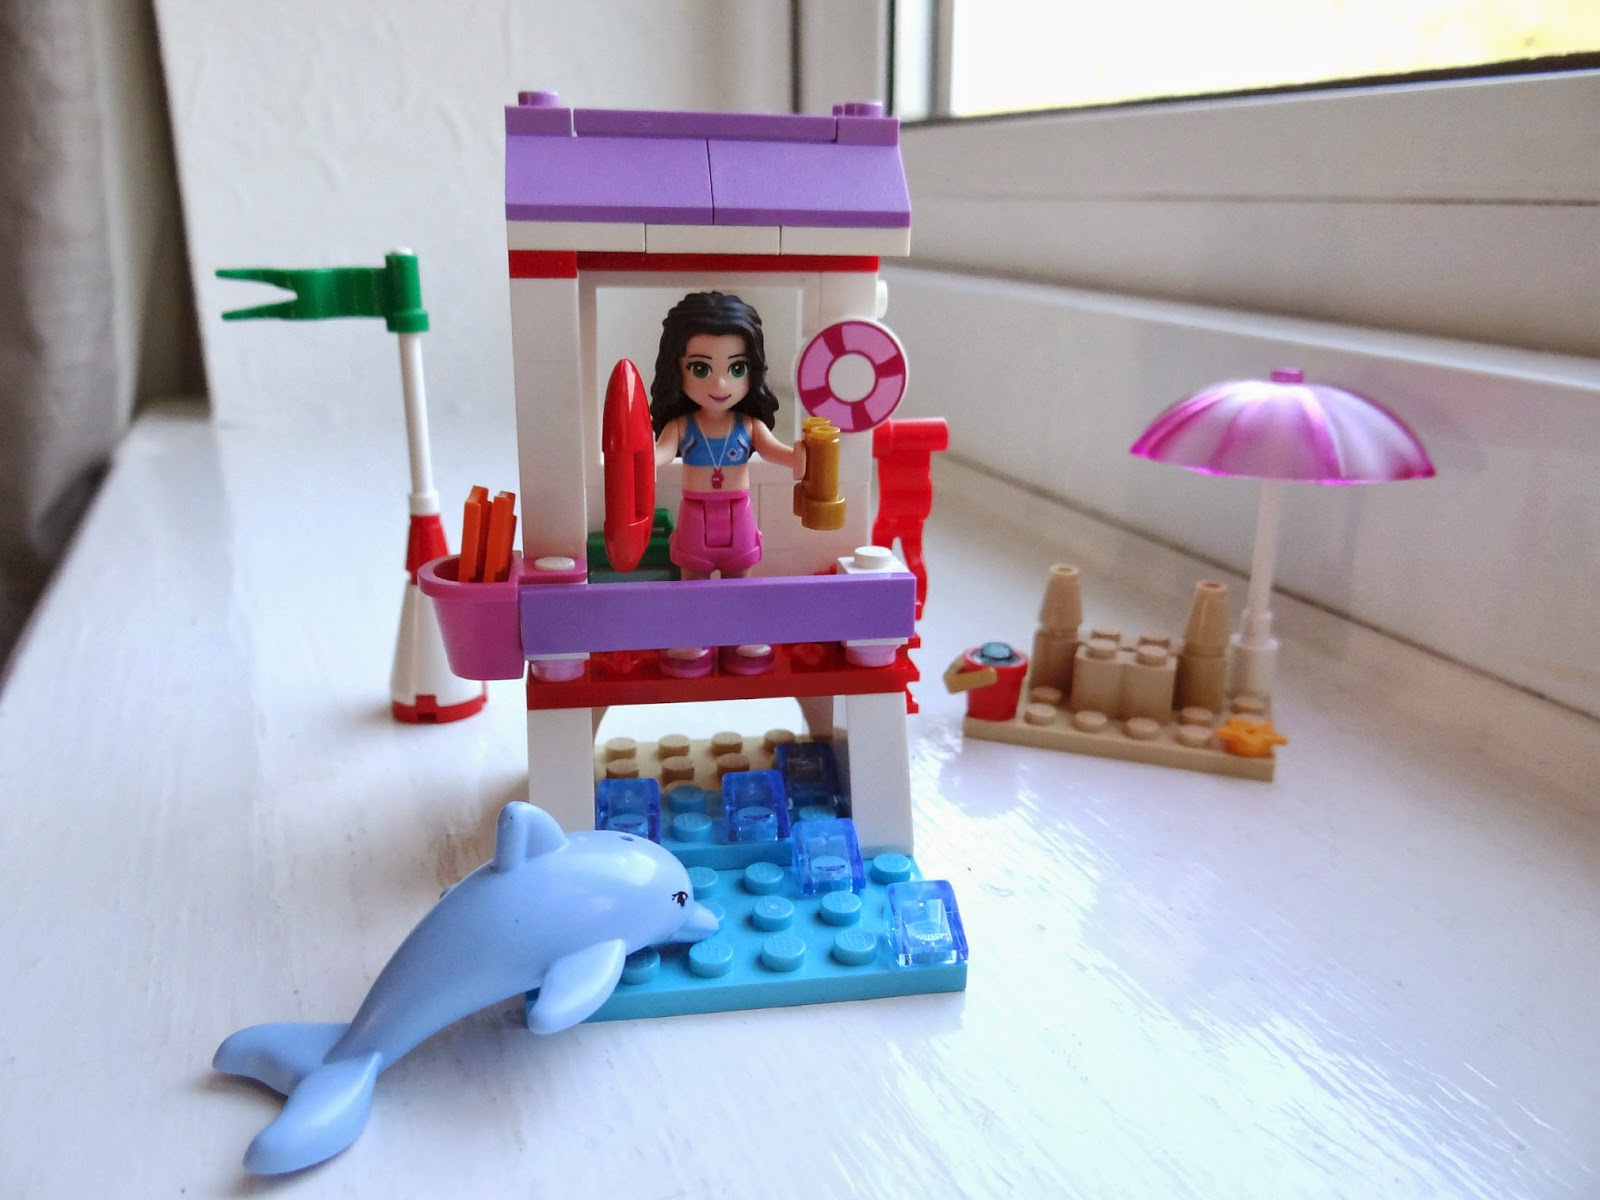 LEGO Spring 2014, LEGO Friends Emma's Lifeguard Post, LEGO Friends Beach